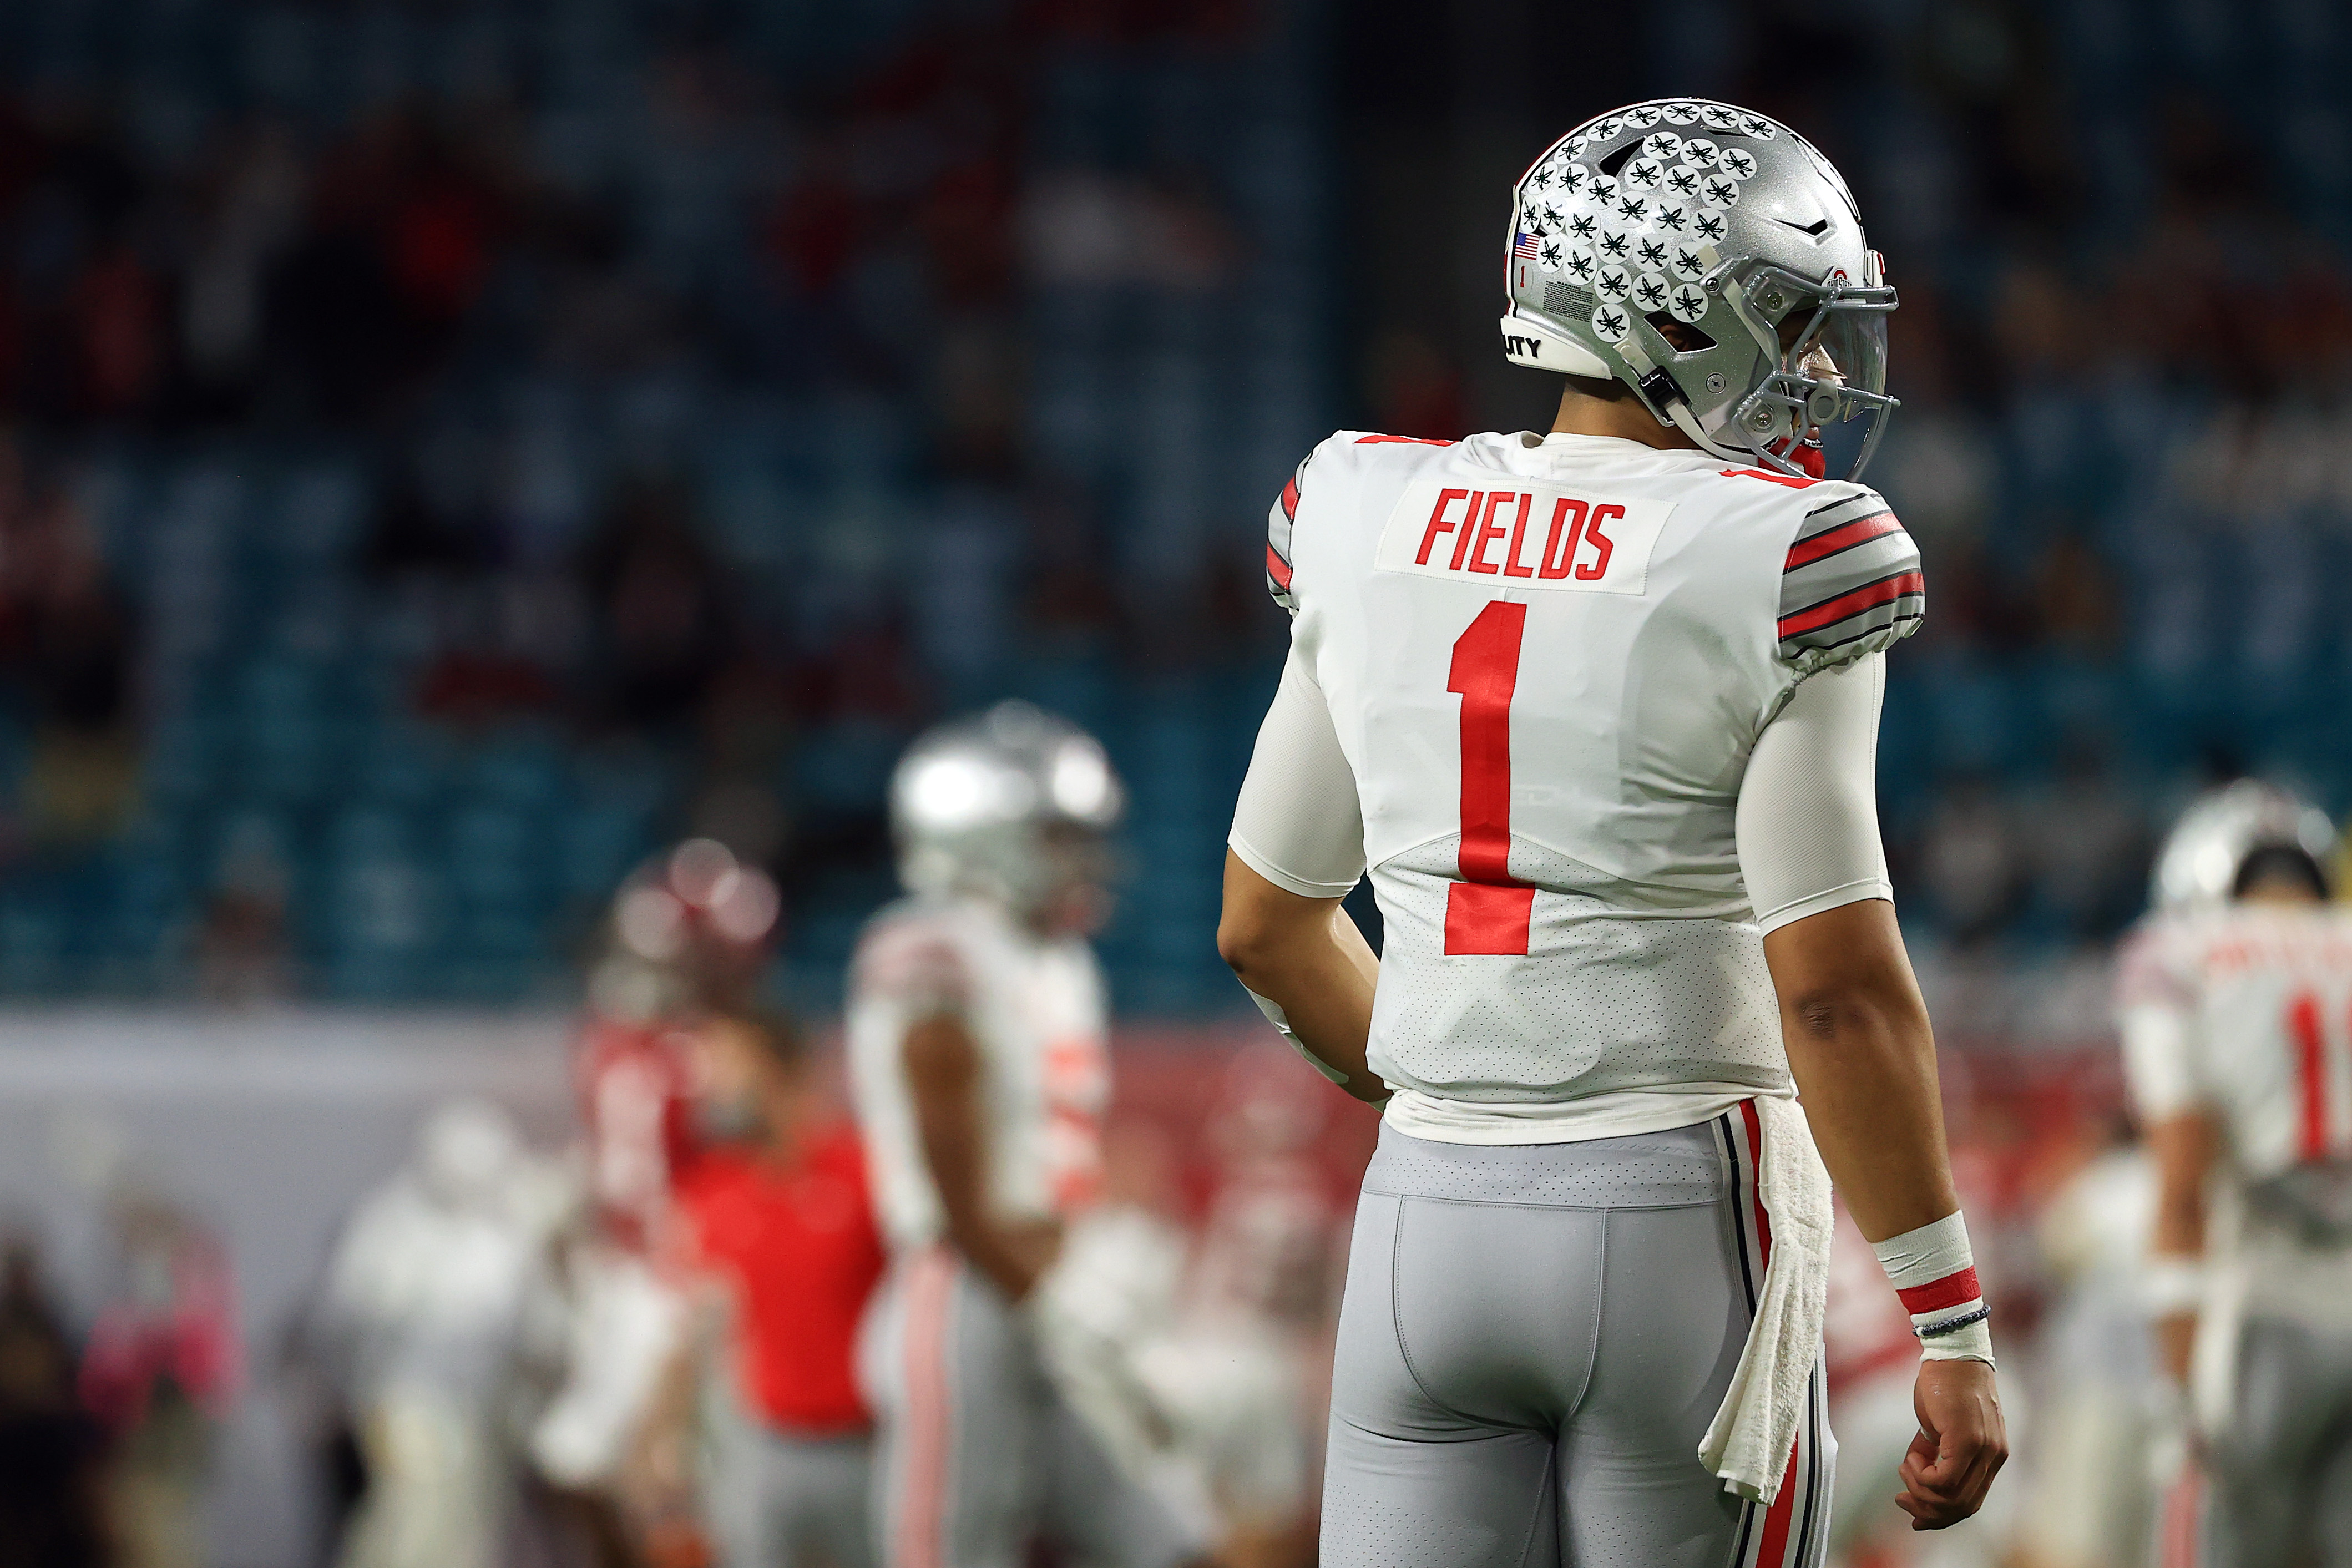 Justin Fields #1 of the Ohio State Buckeyes looks on prior to the College Football Playoff National Championship game against the Alabama Crimson Tide at Hard Rock Stadium on January 11, 2021 in Miami Gardens, Florida.